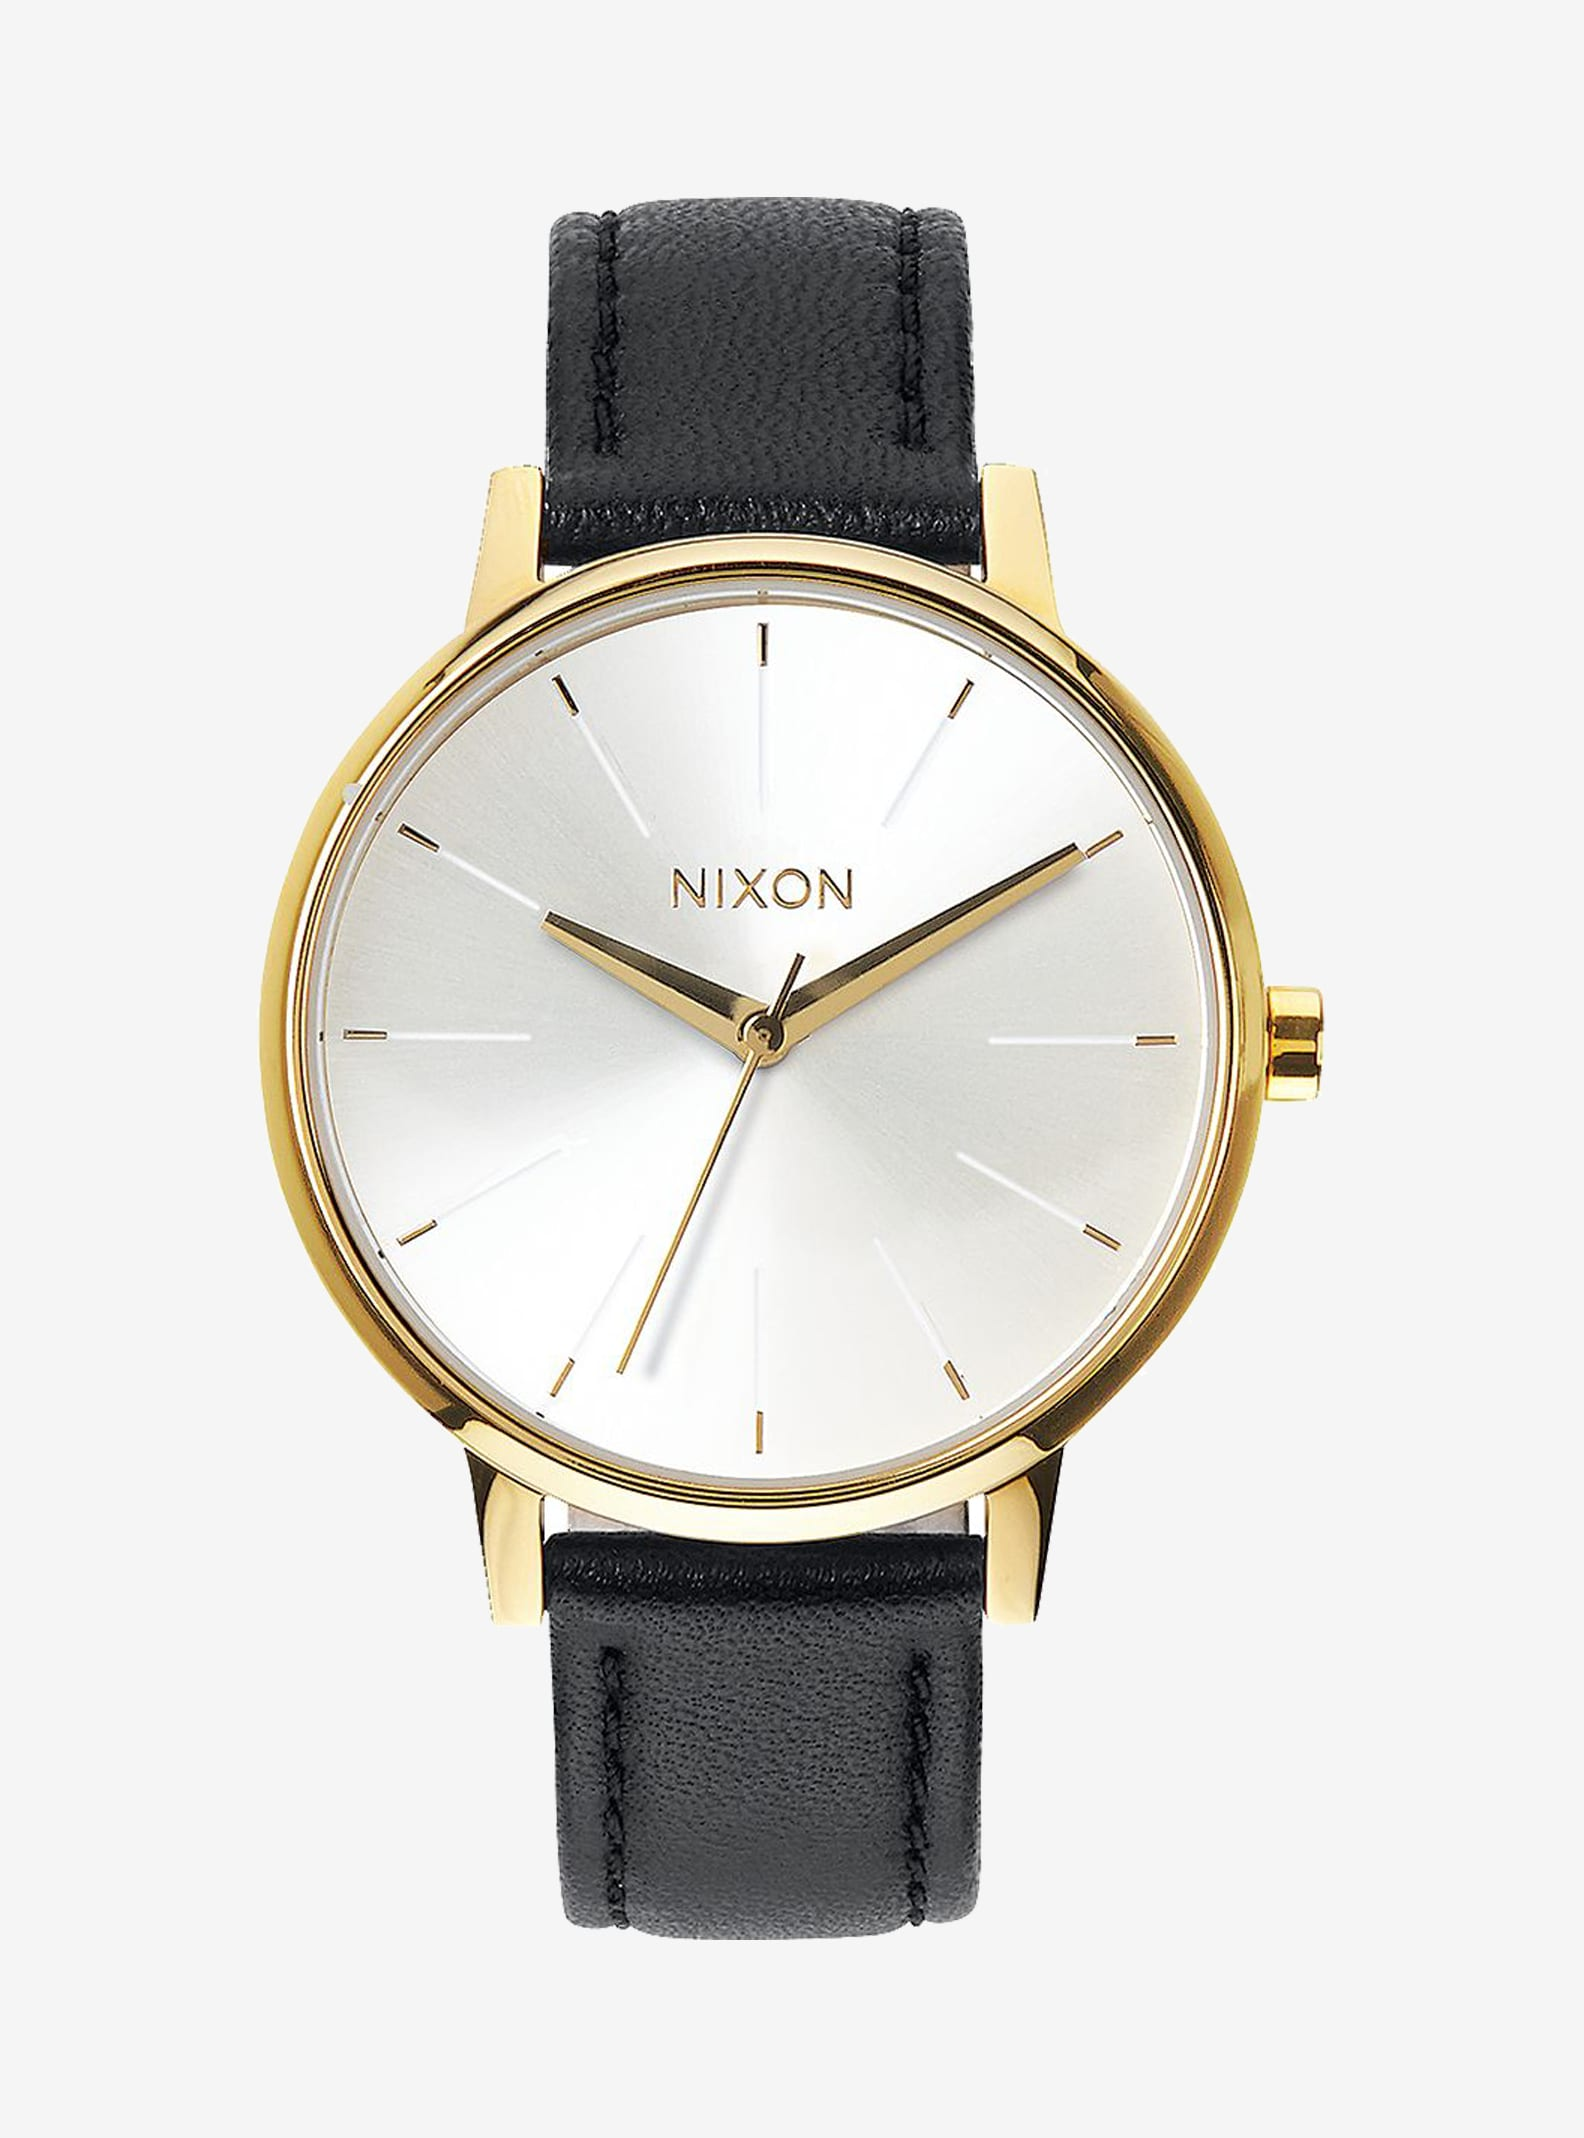 Nixon Kensington Leather Watch shown in Gold / Black / White